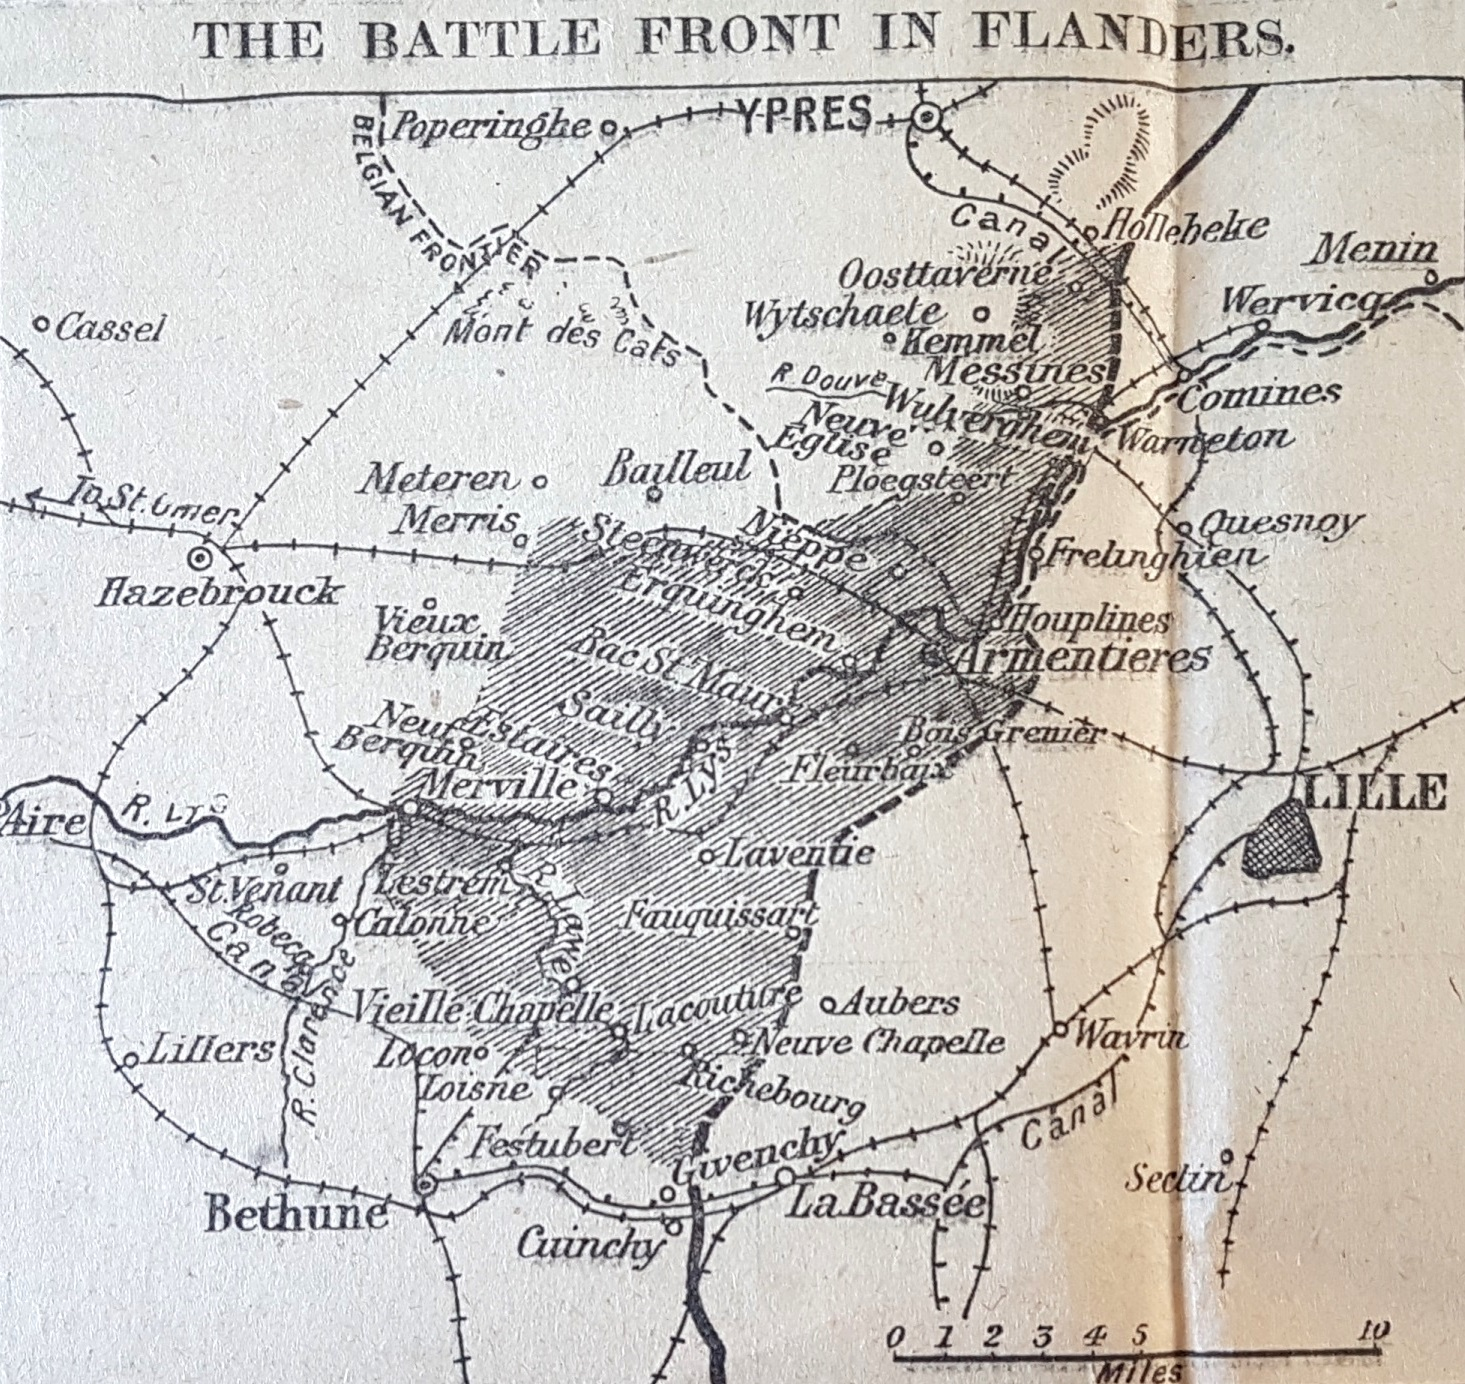 Map of 'The Battle Front in Flanders', April 1918